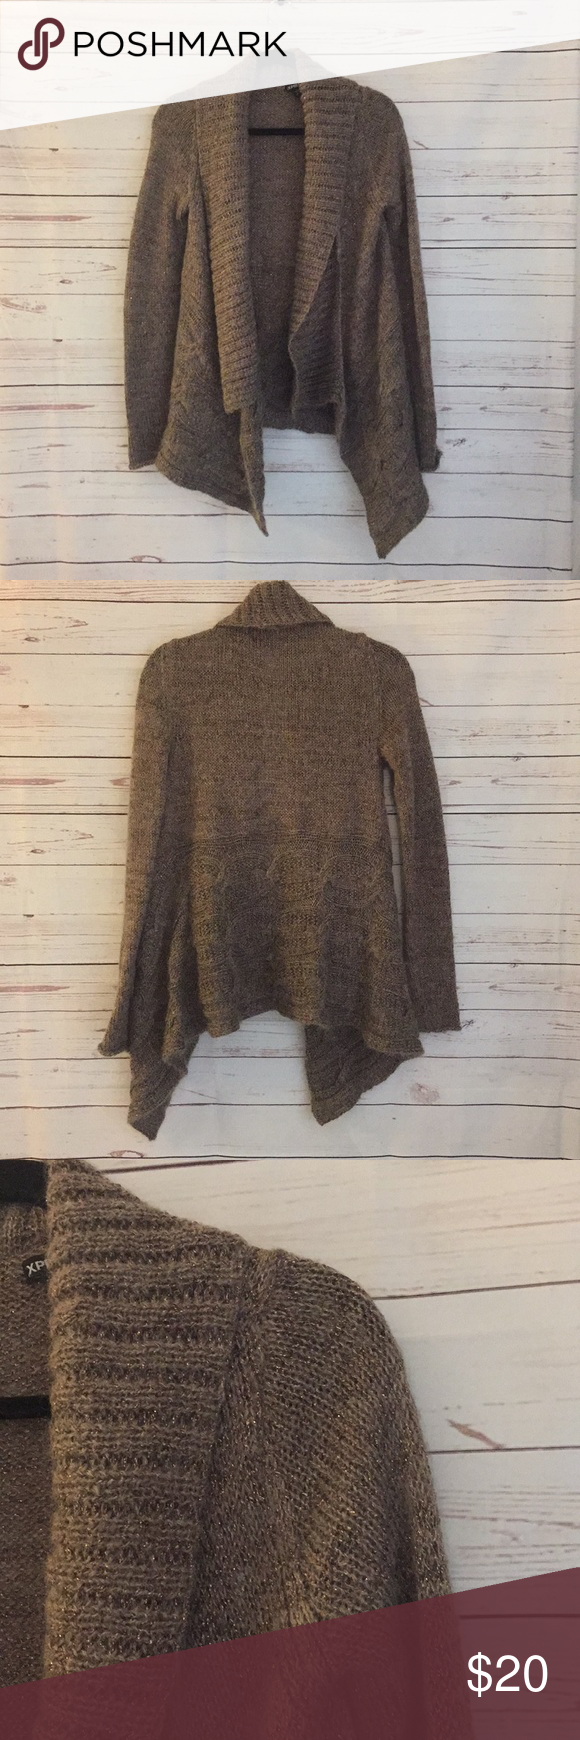 Express Open Front Sweater Cardigan Shimmer Sz S Beautiful